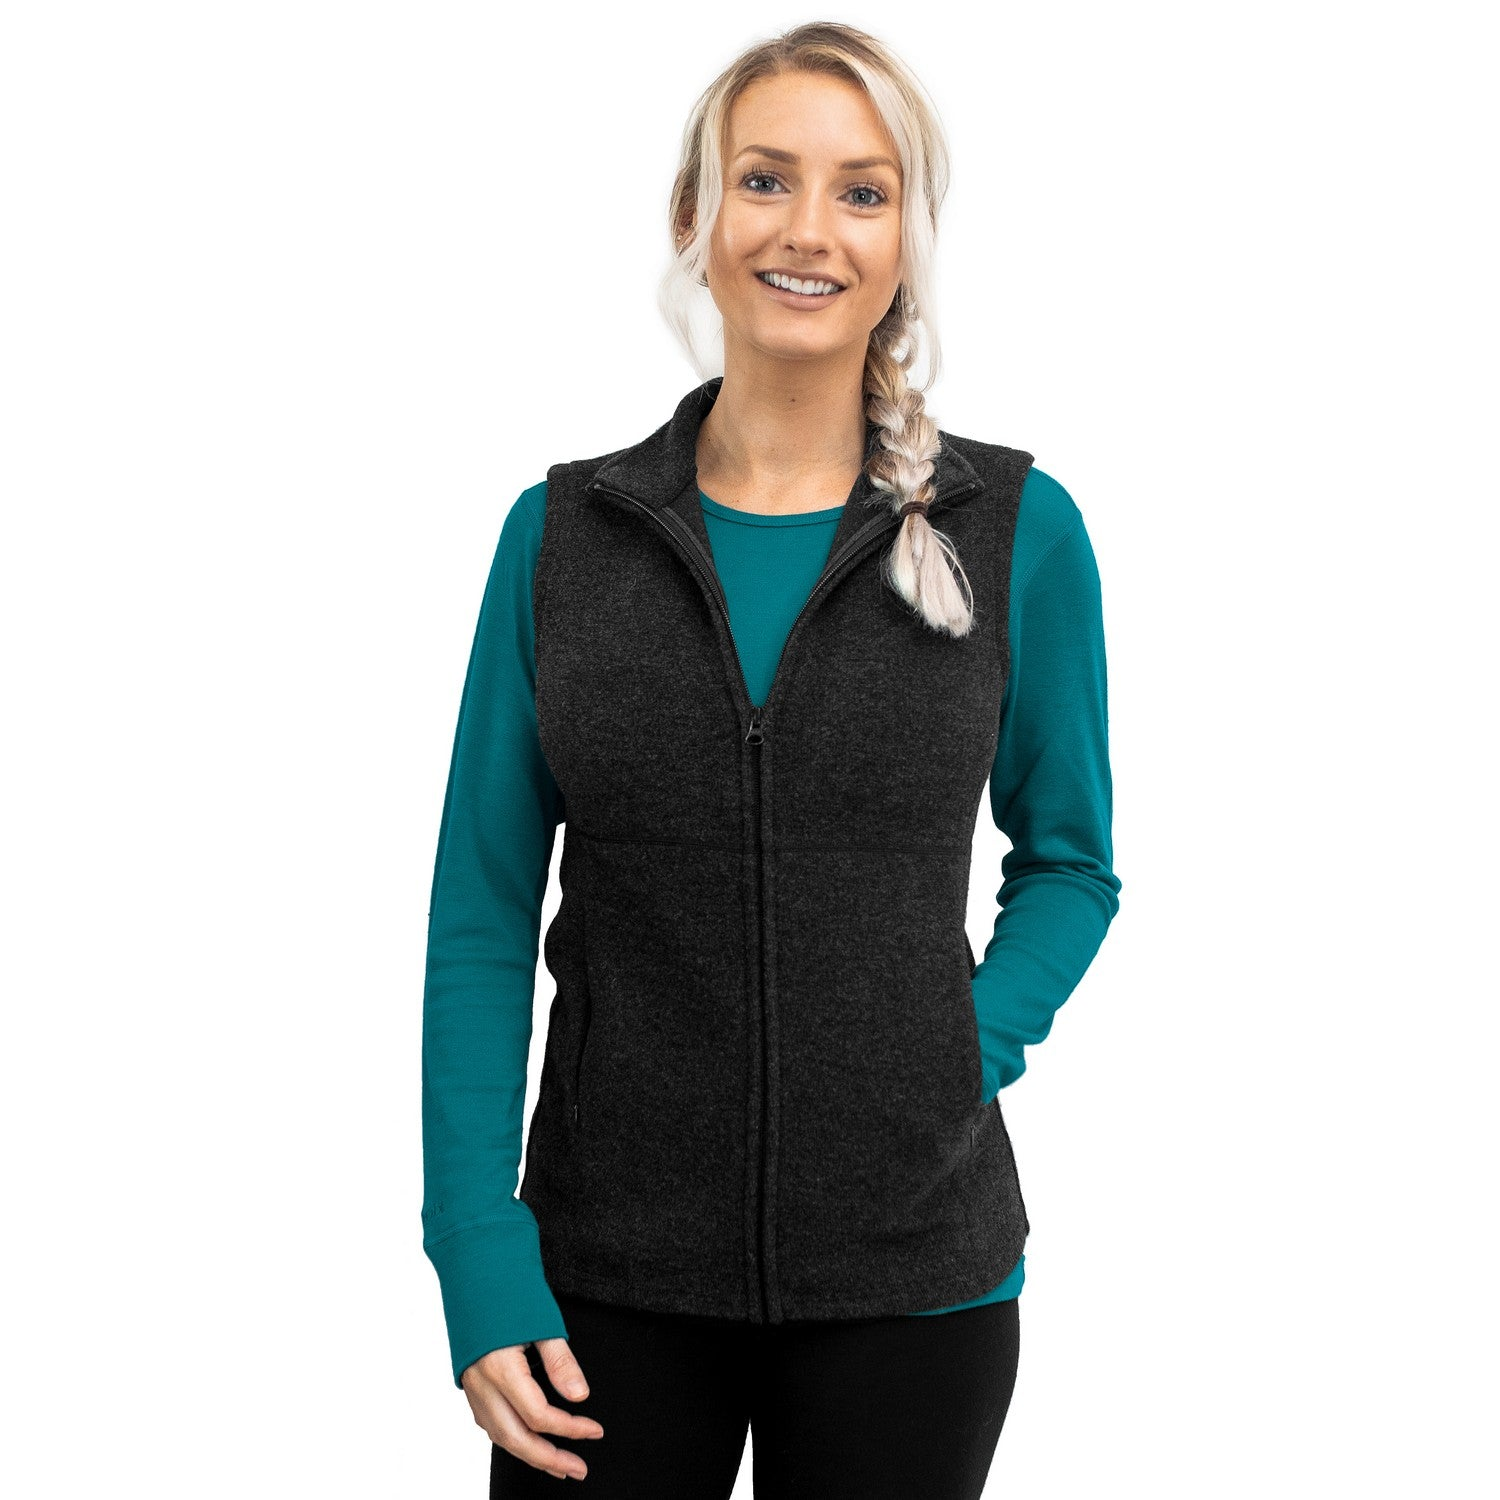 Women's Merino Wool Vest - Carbon Black